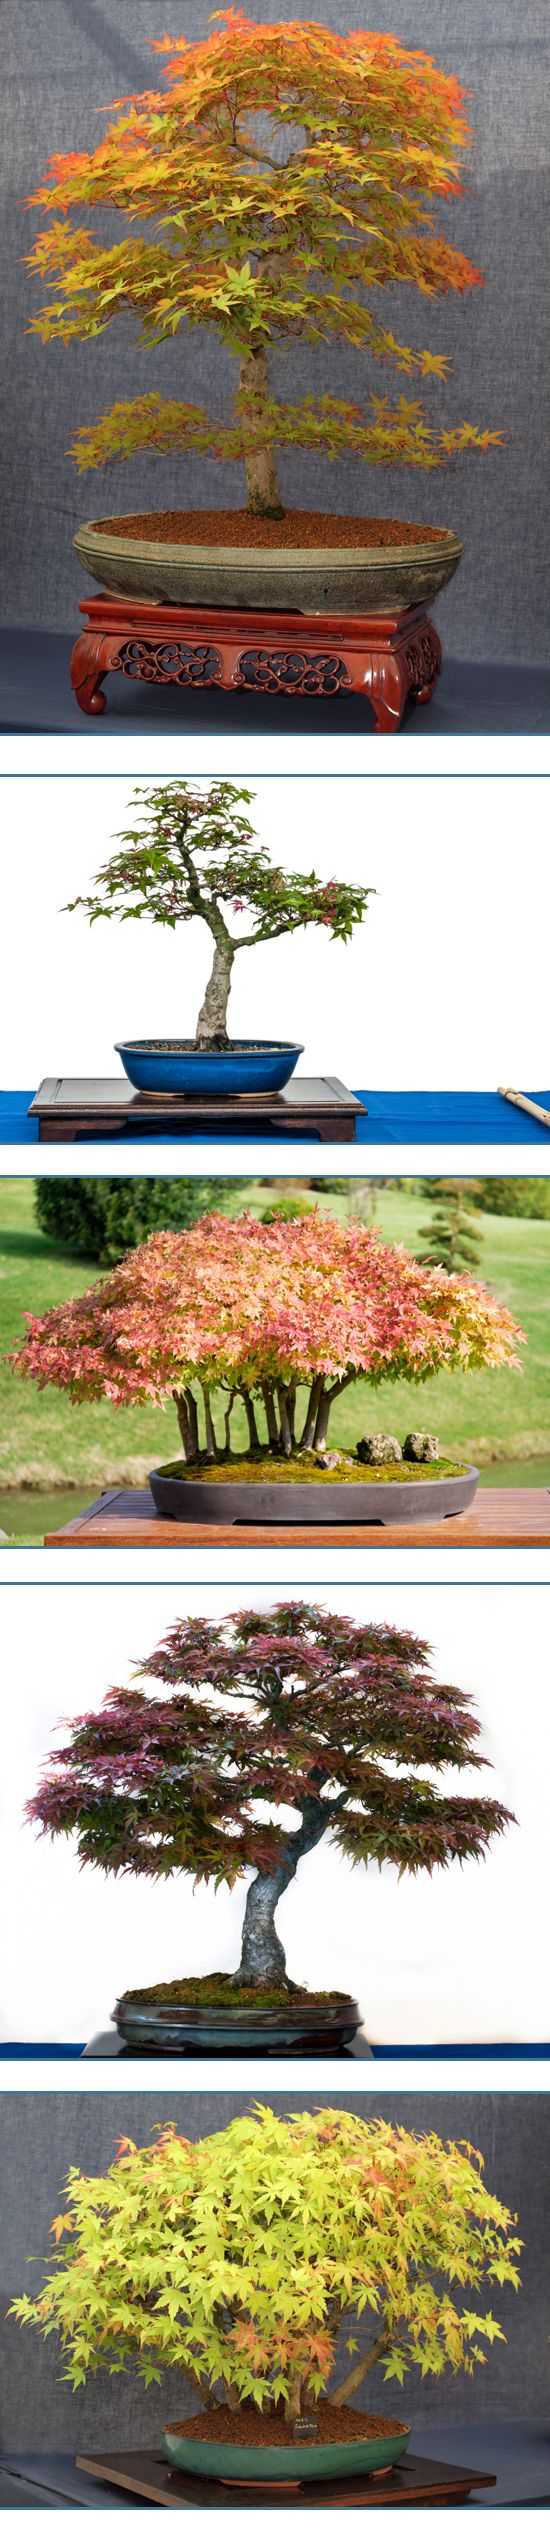 1000 Images About Bonsai Trees On Pinterest Maple Bonsai